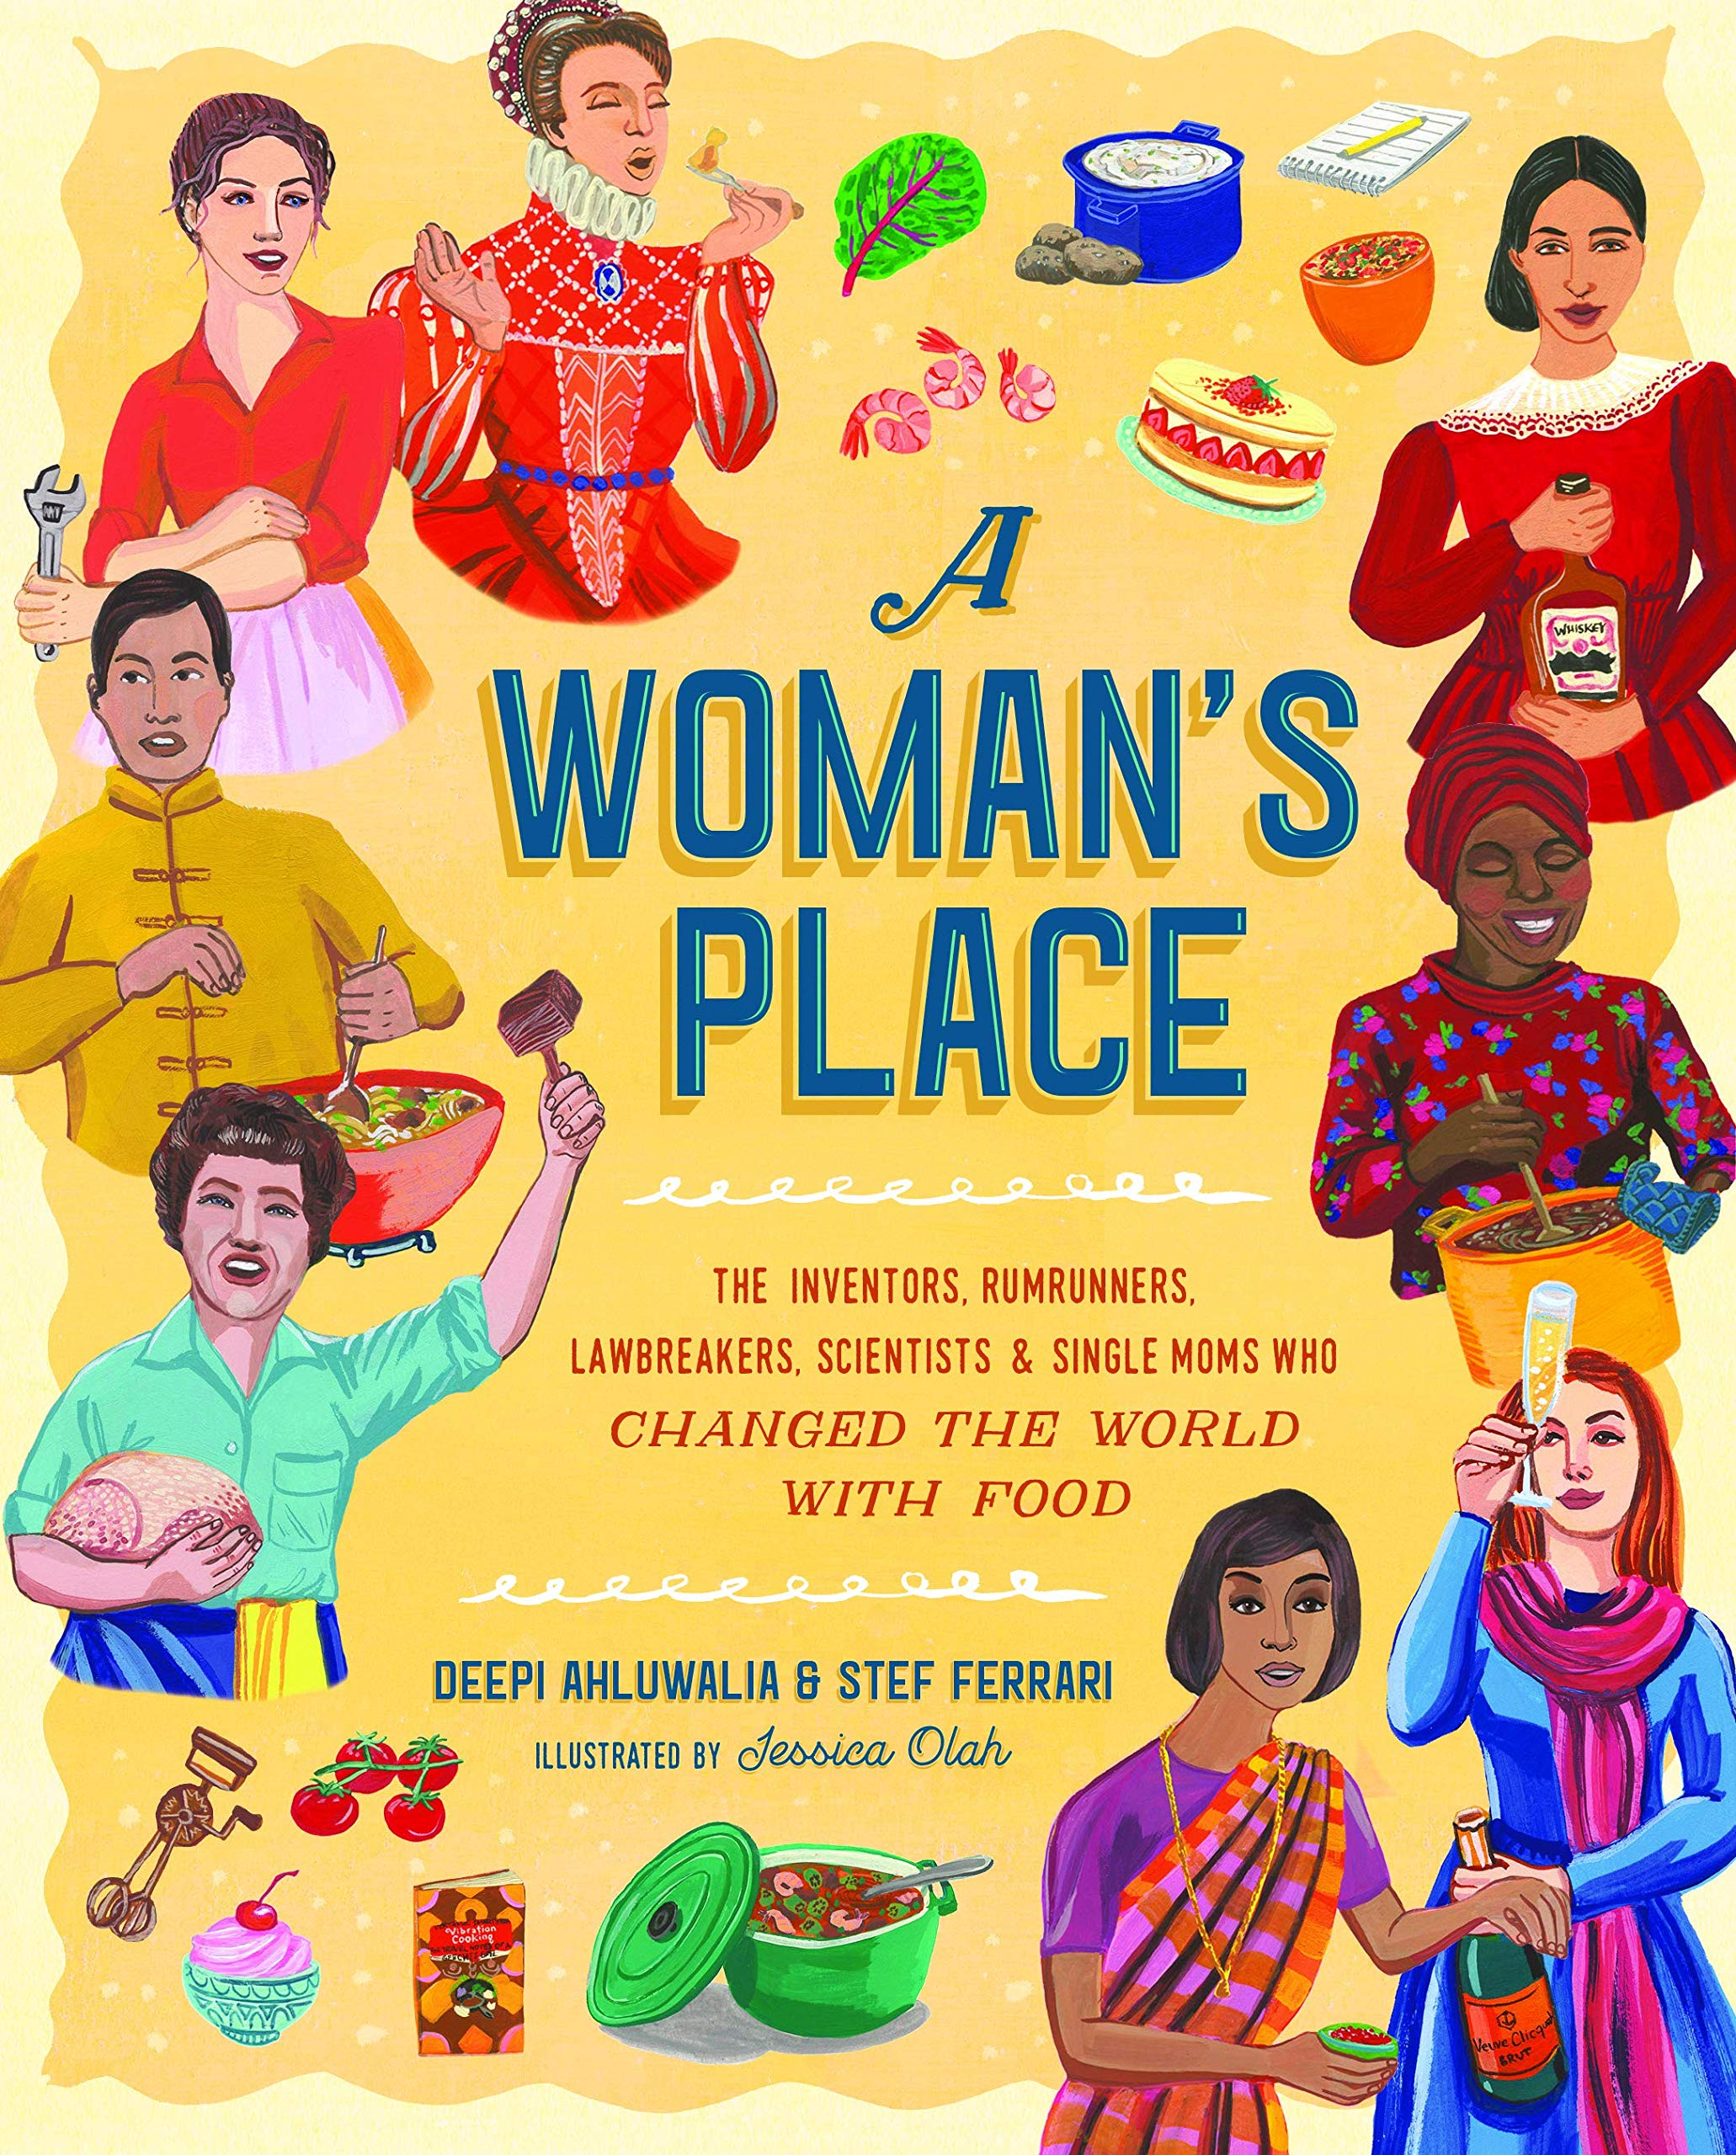 A Woman's Place - The Inventors, Rumrunners, Lawbreakers , Scientists & Single Moms Who Changed The World Of Food